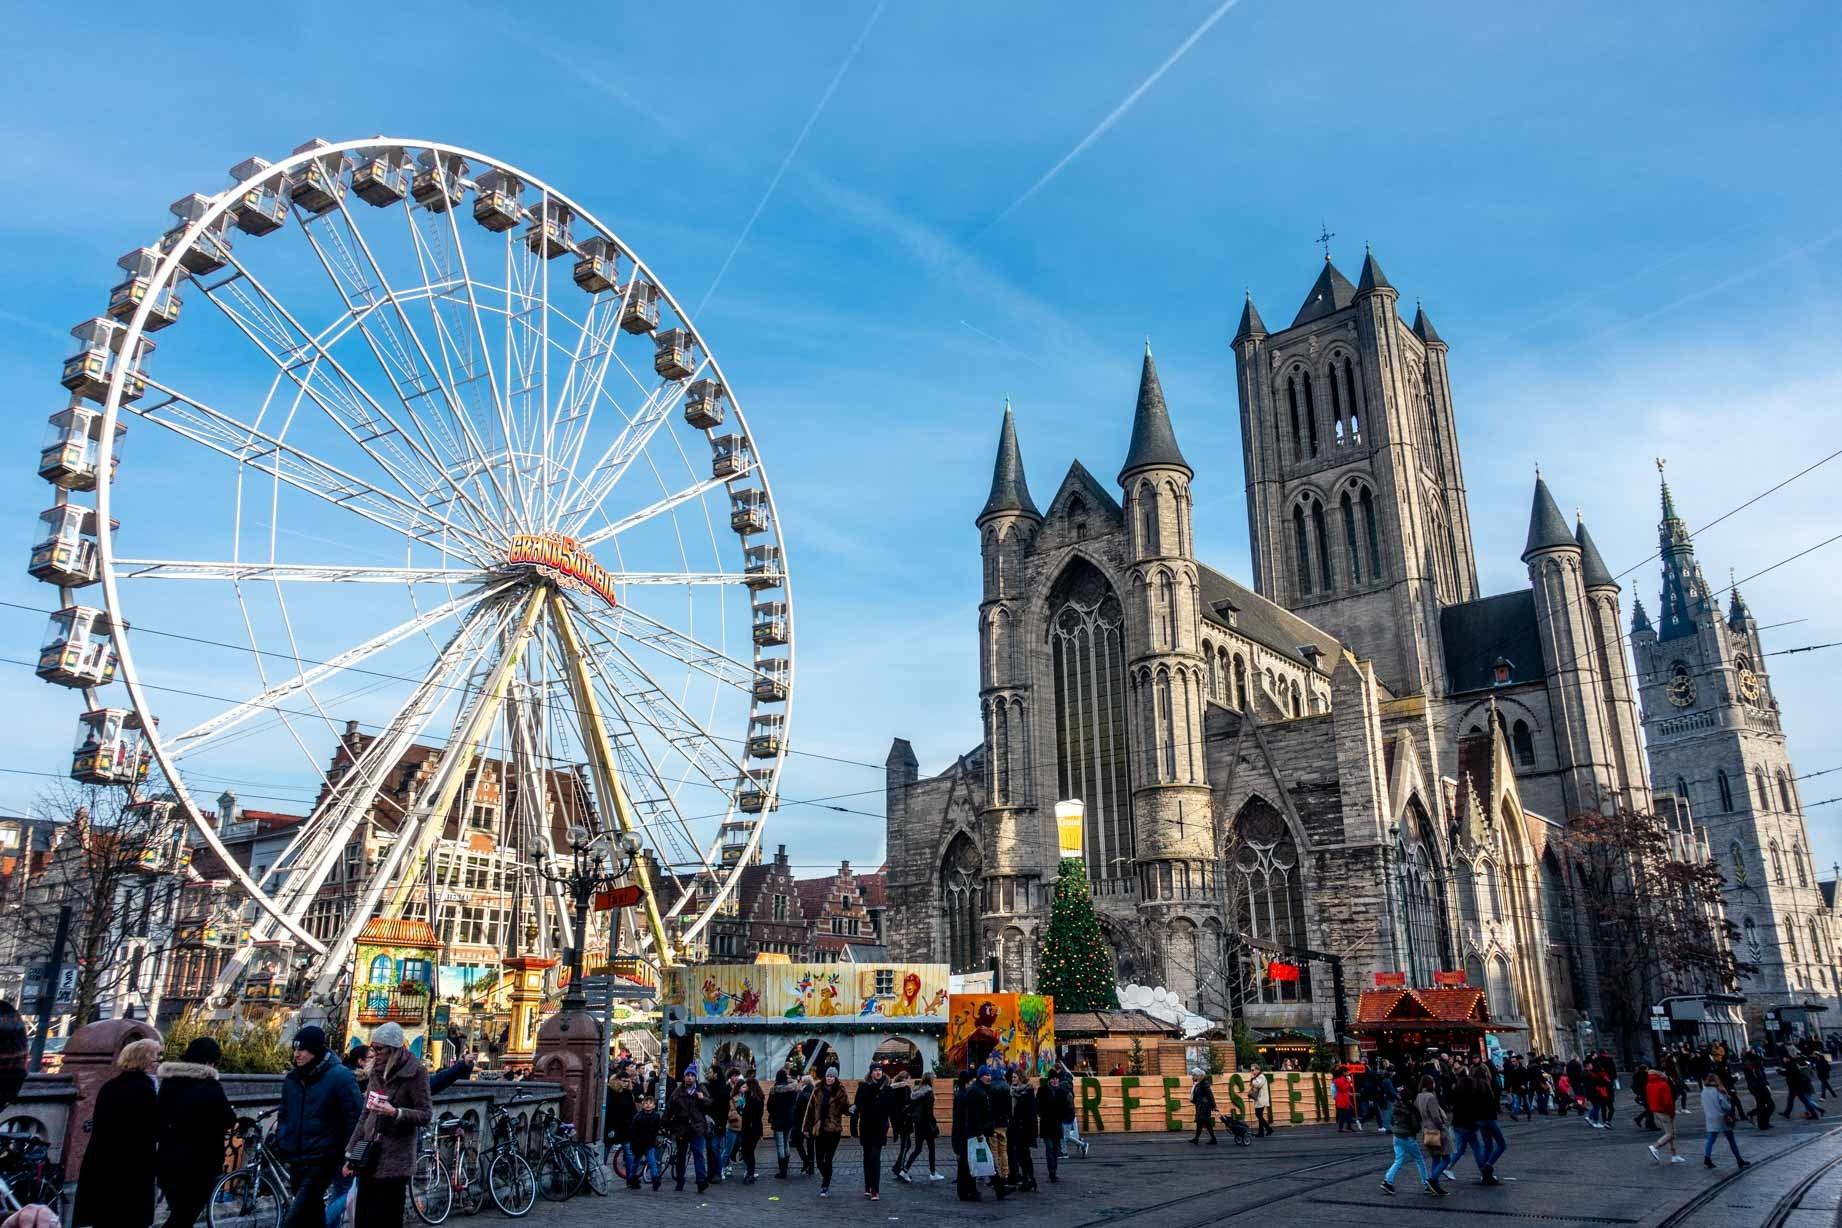 Ferris wheel and booths in front of St Nicholas Church at the Ghent Christmas market in Belgium